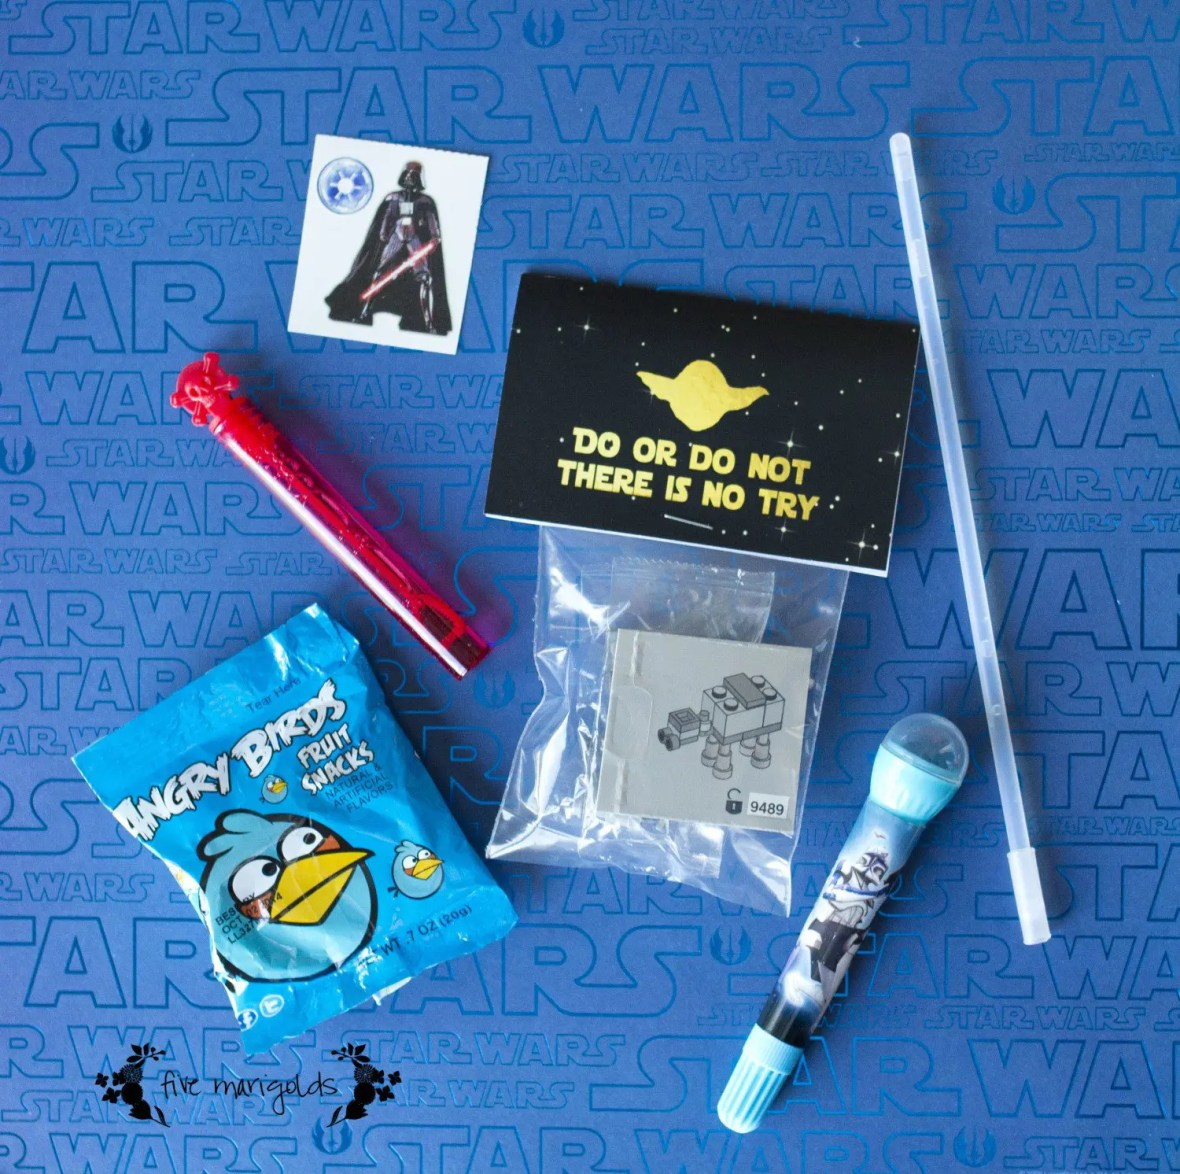 Star Wars Lego Birthday Favors | www.fivemarigolds.com